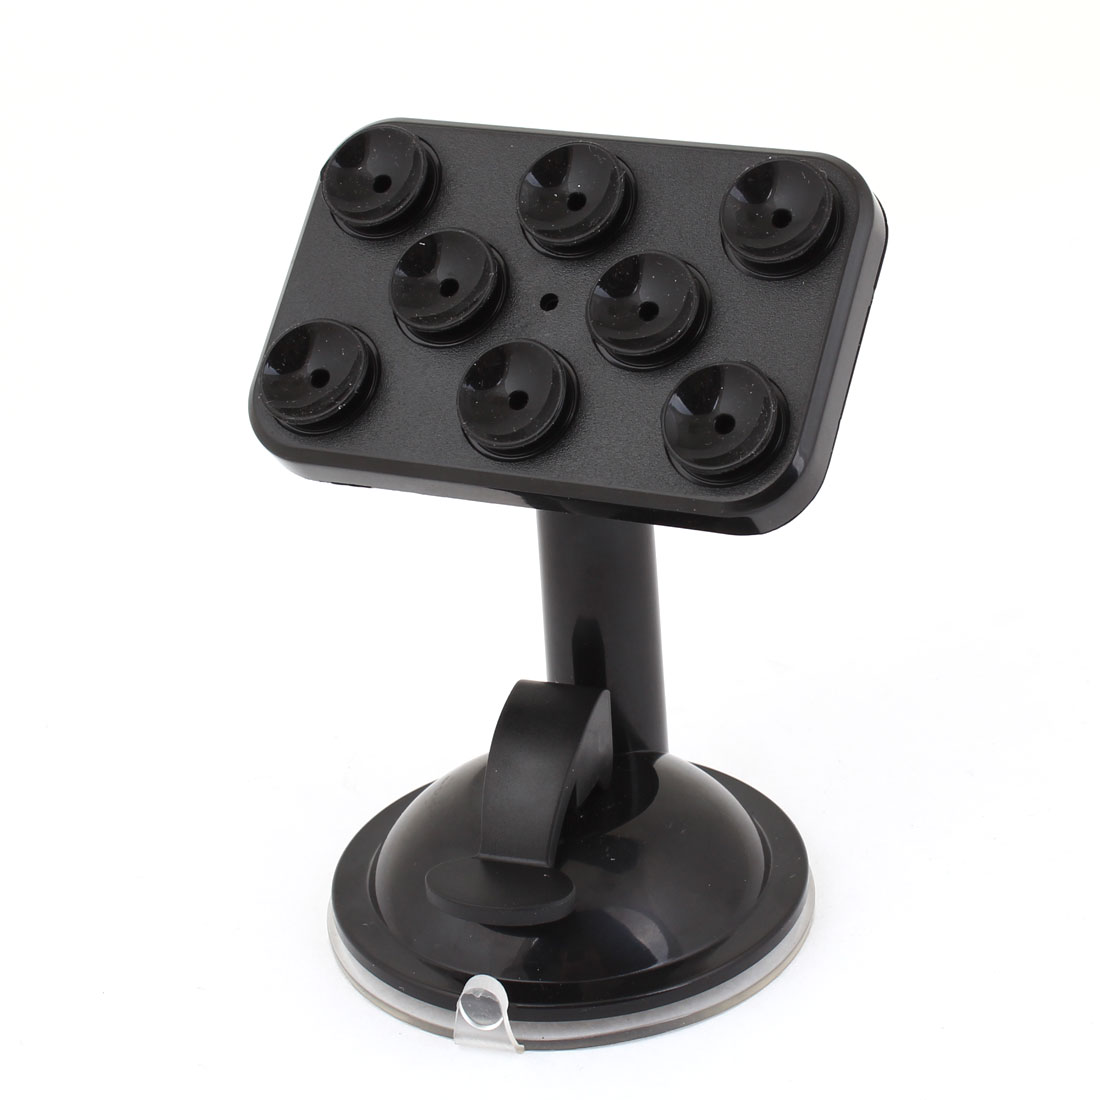 Black Plastic Adjustable Angle Dashboard Mount Phone Bracket for Car